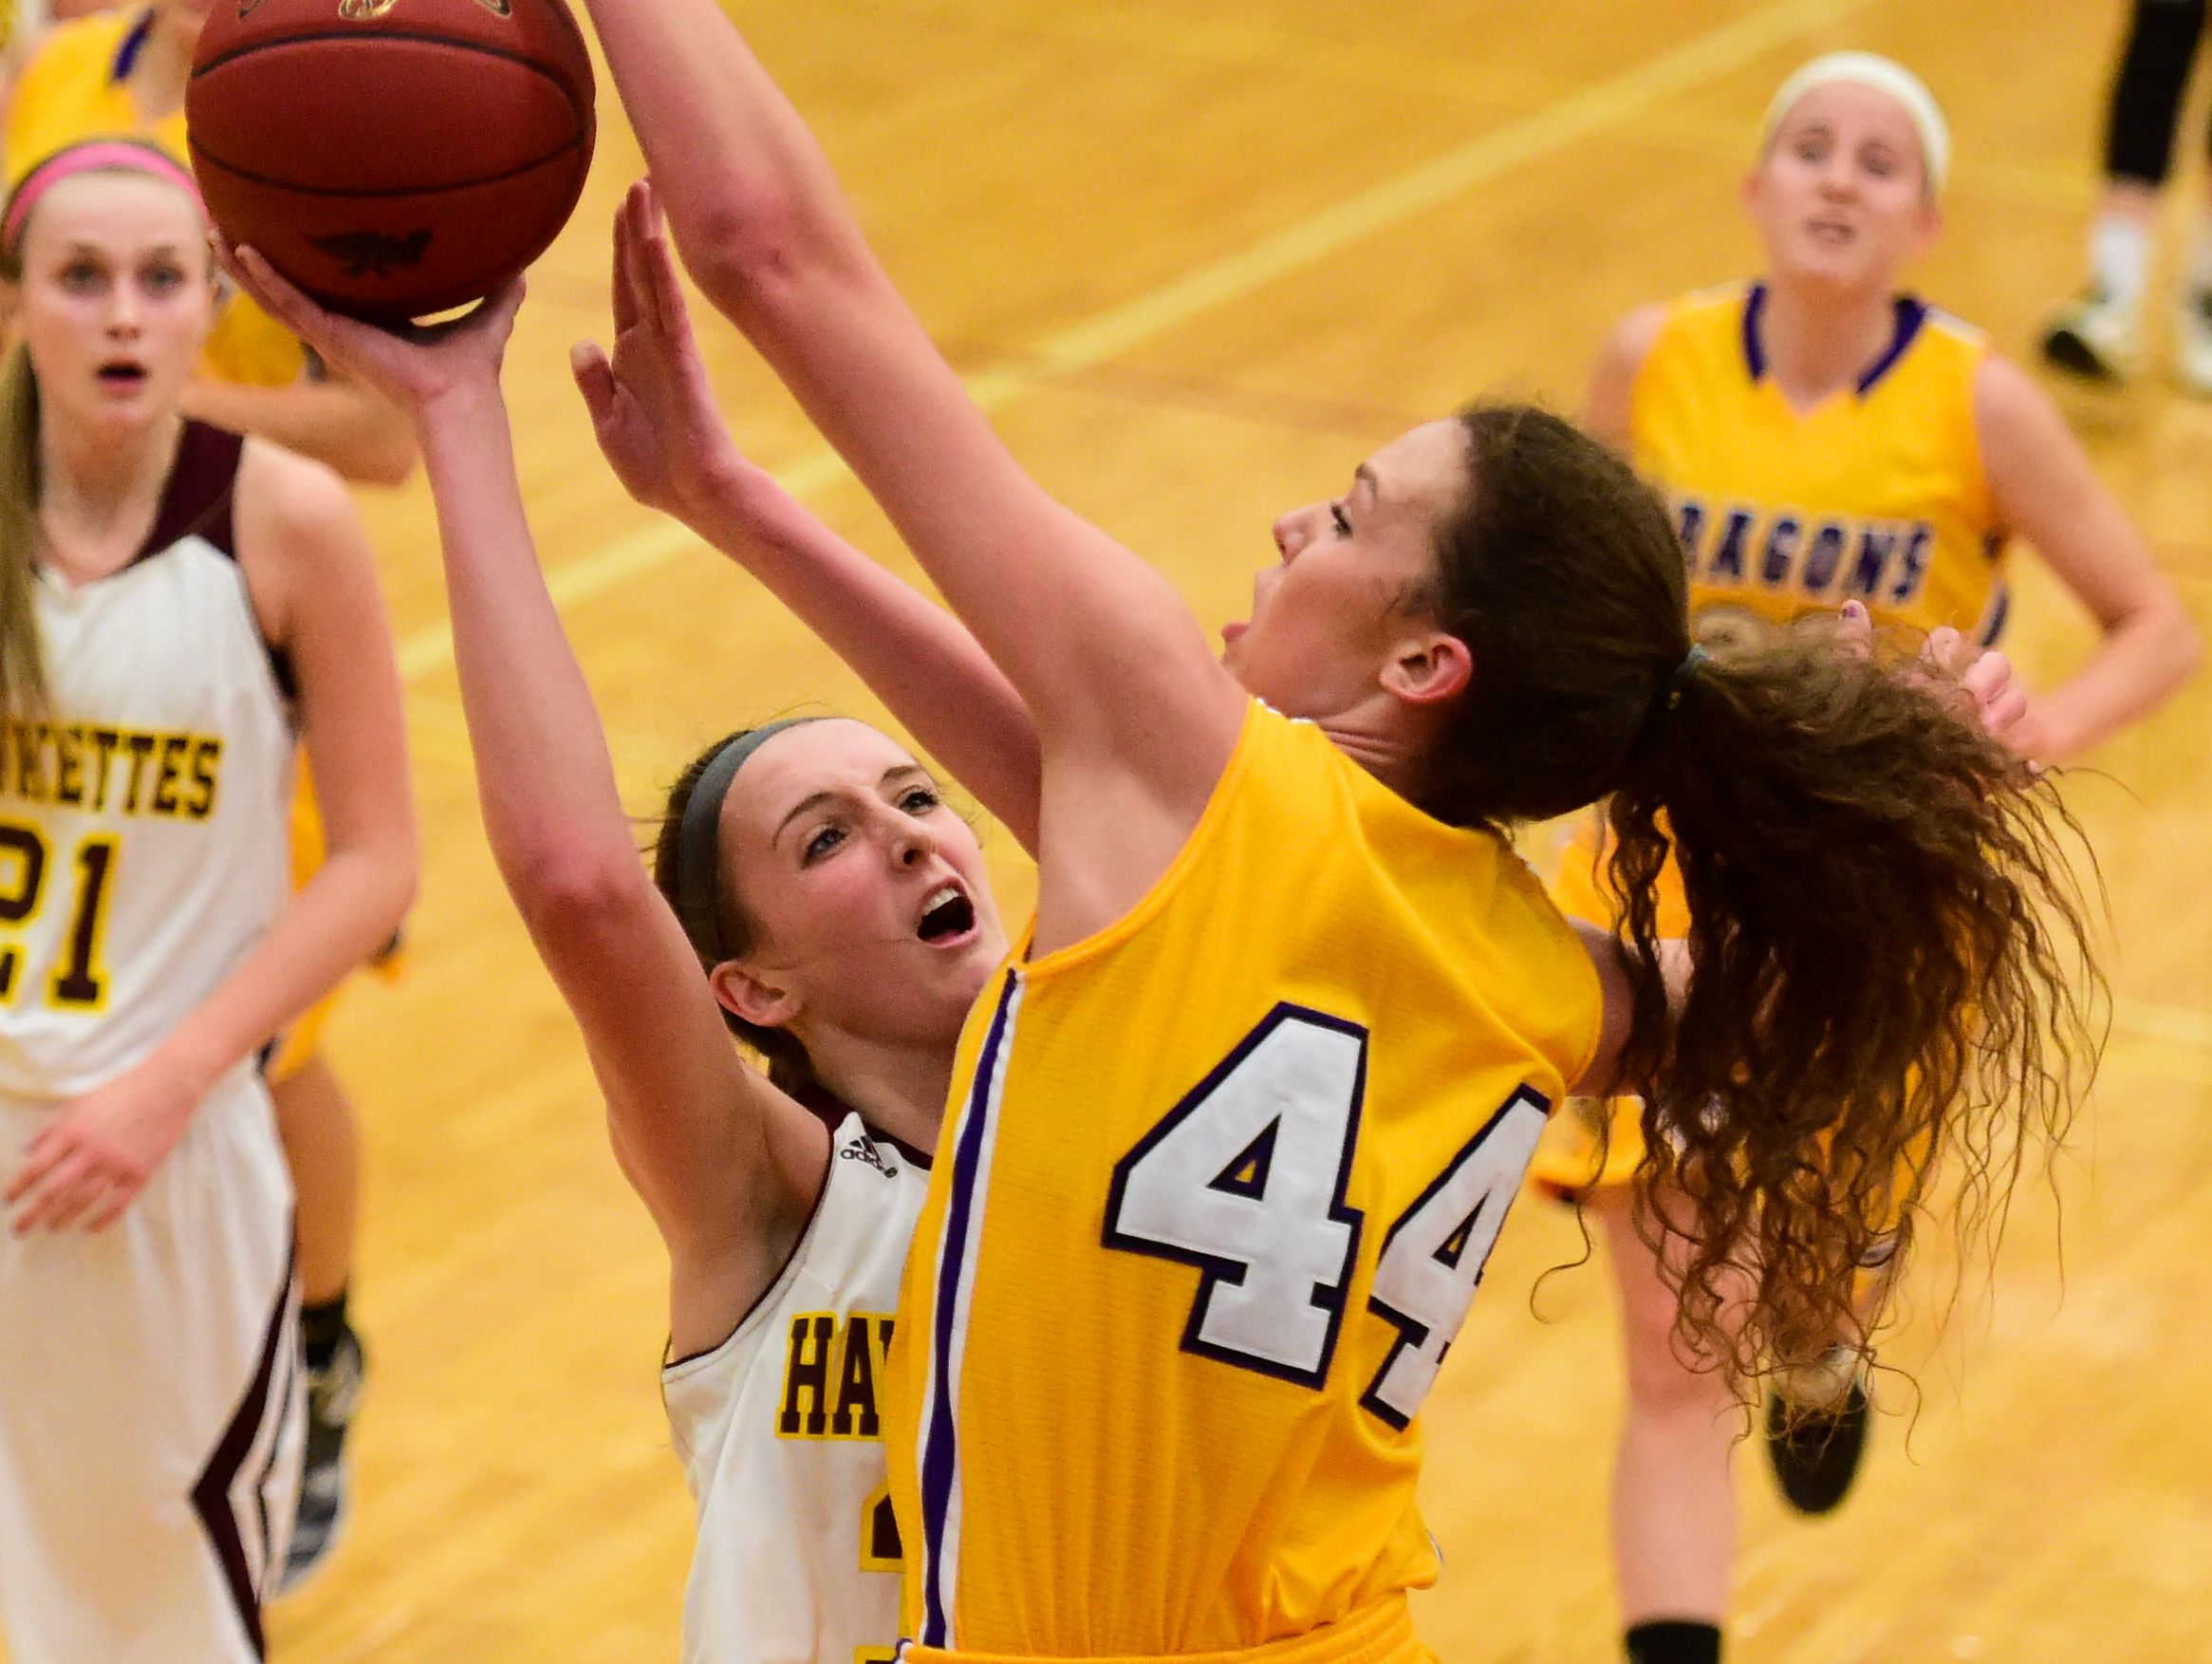 Ankeny's Sydney Shadravan (32) gets her shot blocked by Johnston's Taryn Knuth (44) on Tuesday, January 19, 2016, during a basketball game at Ankeny High School between the Johnston Dragons and the Ankeny Hawks.